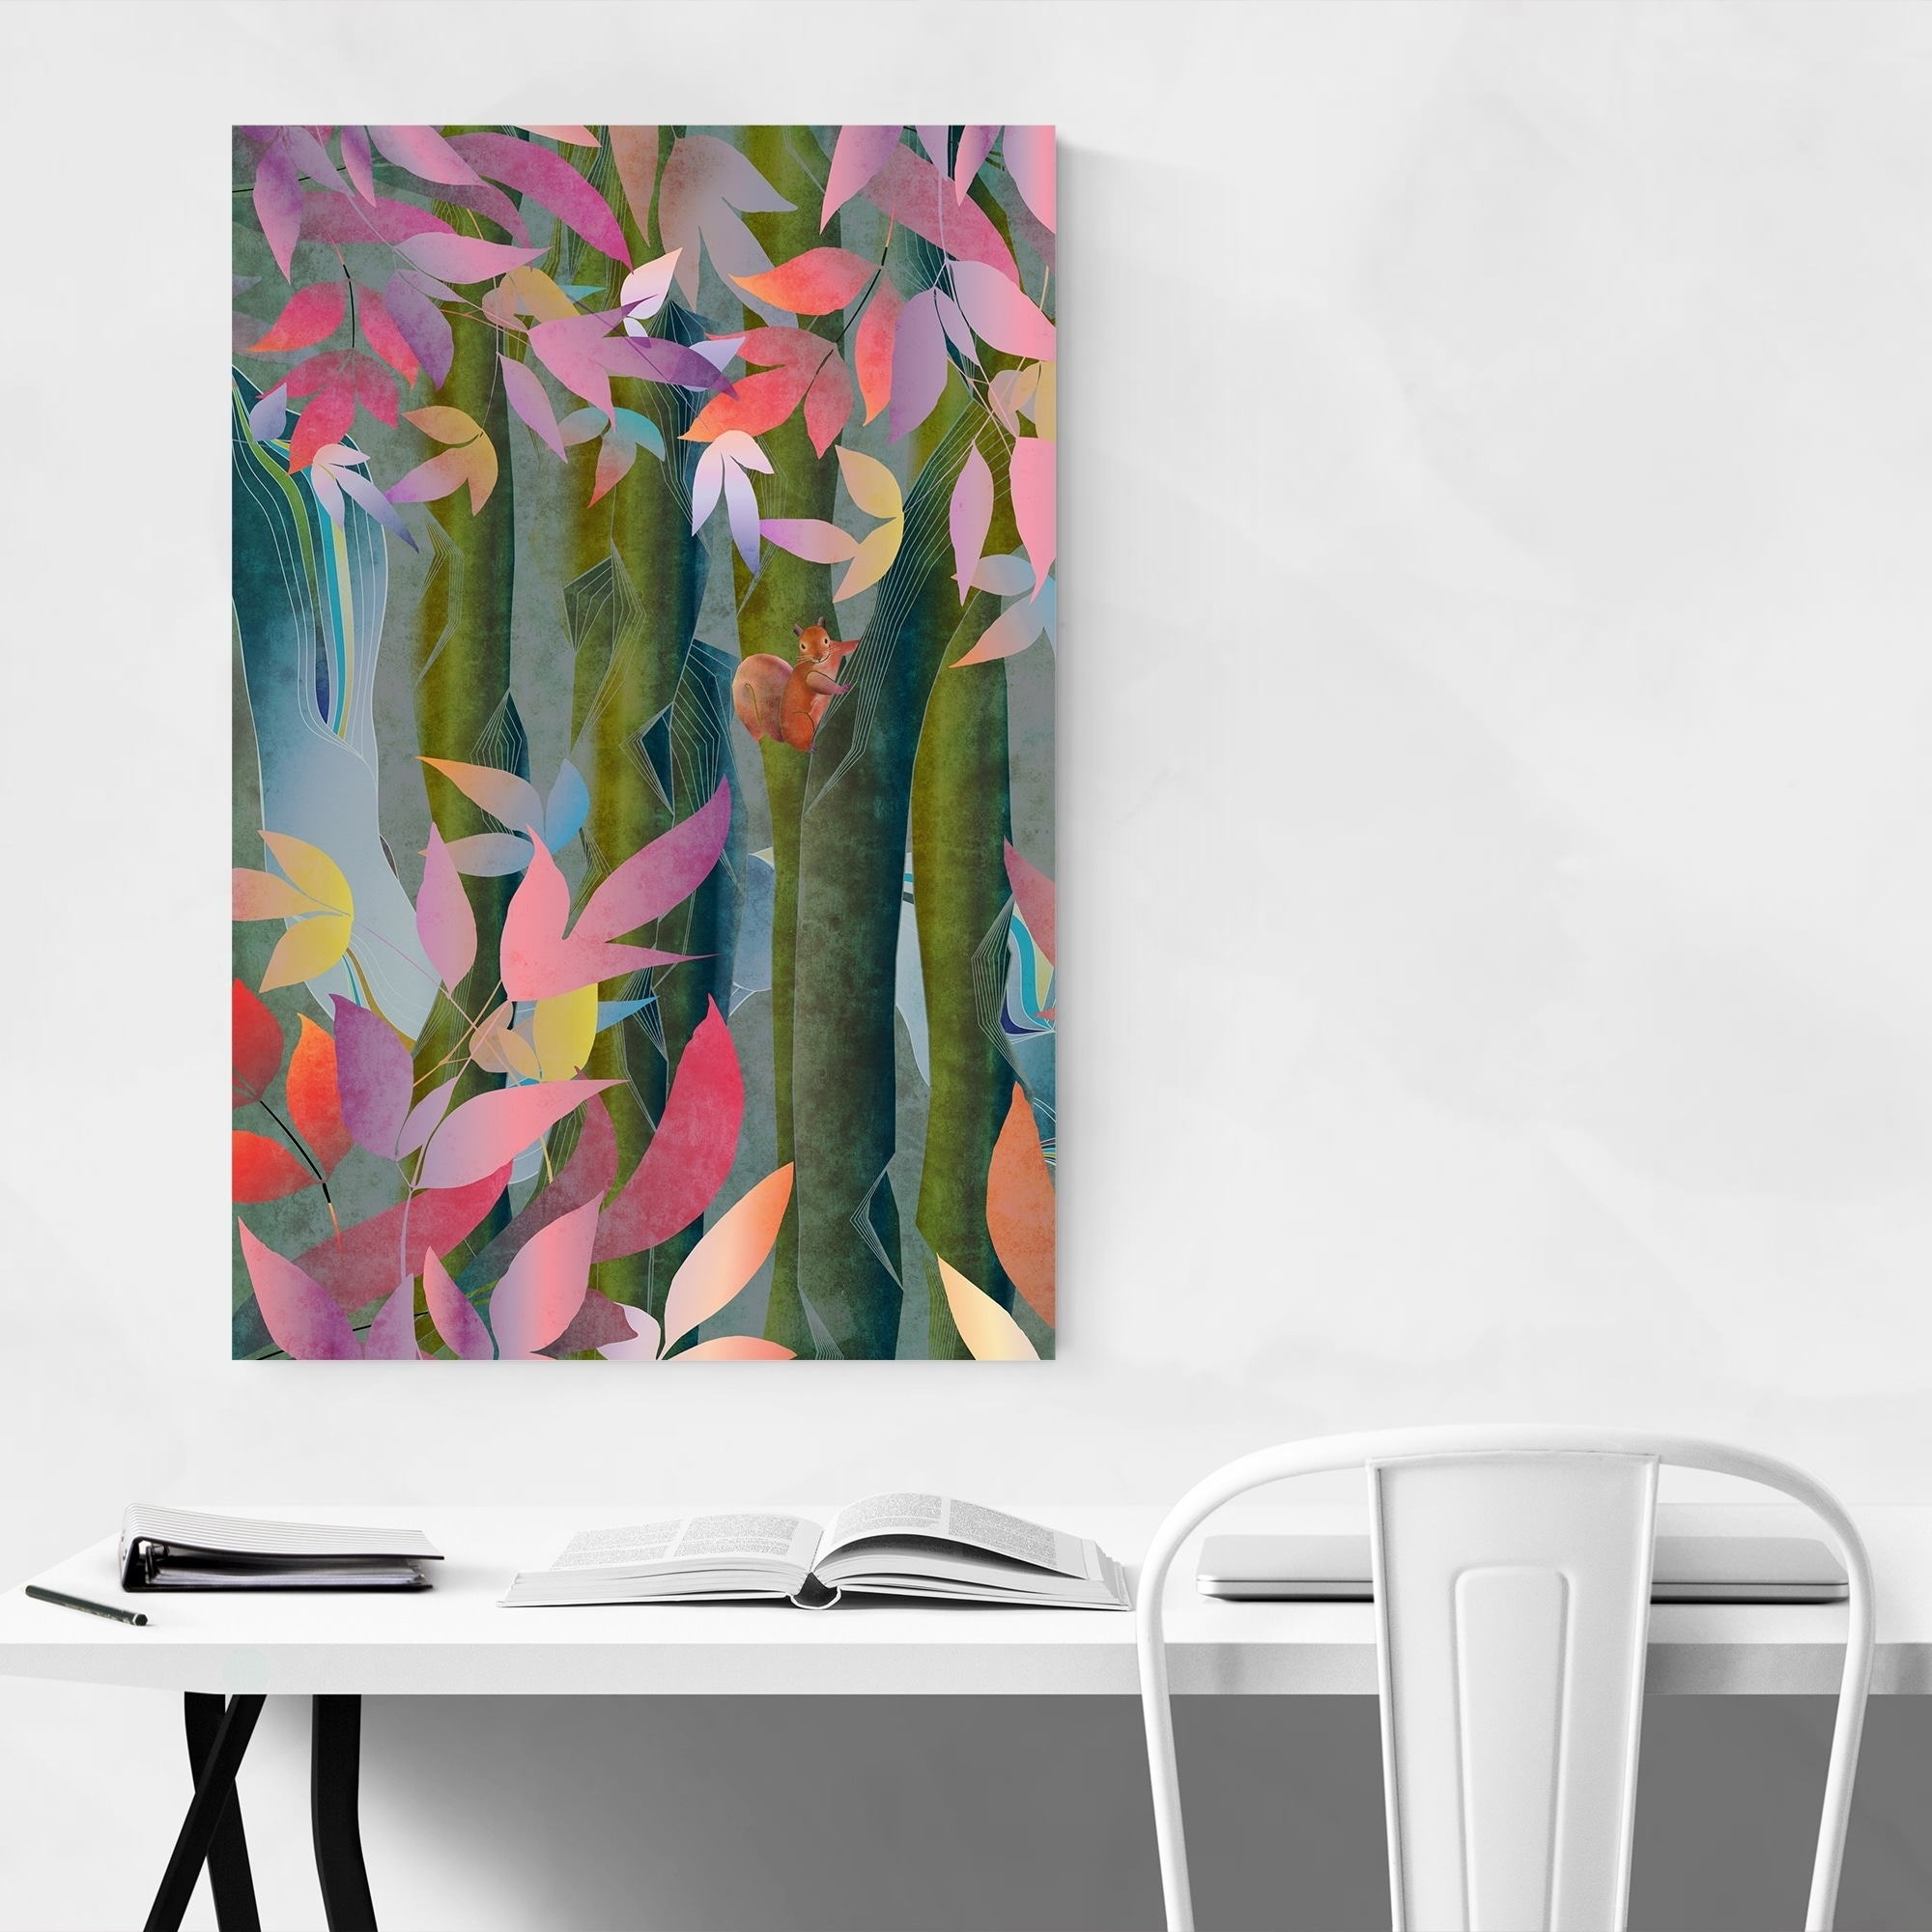 Noir Gallery Autumn Floral Botanical Nature Metal Wall Art Print Overstock 28724875